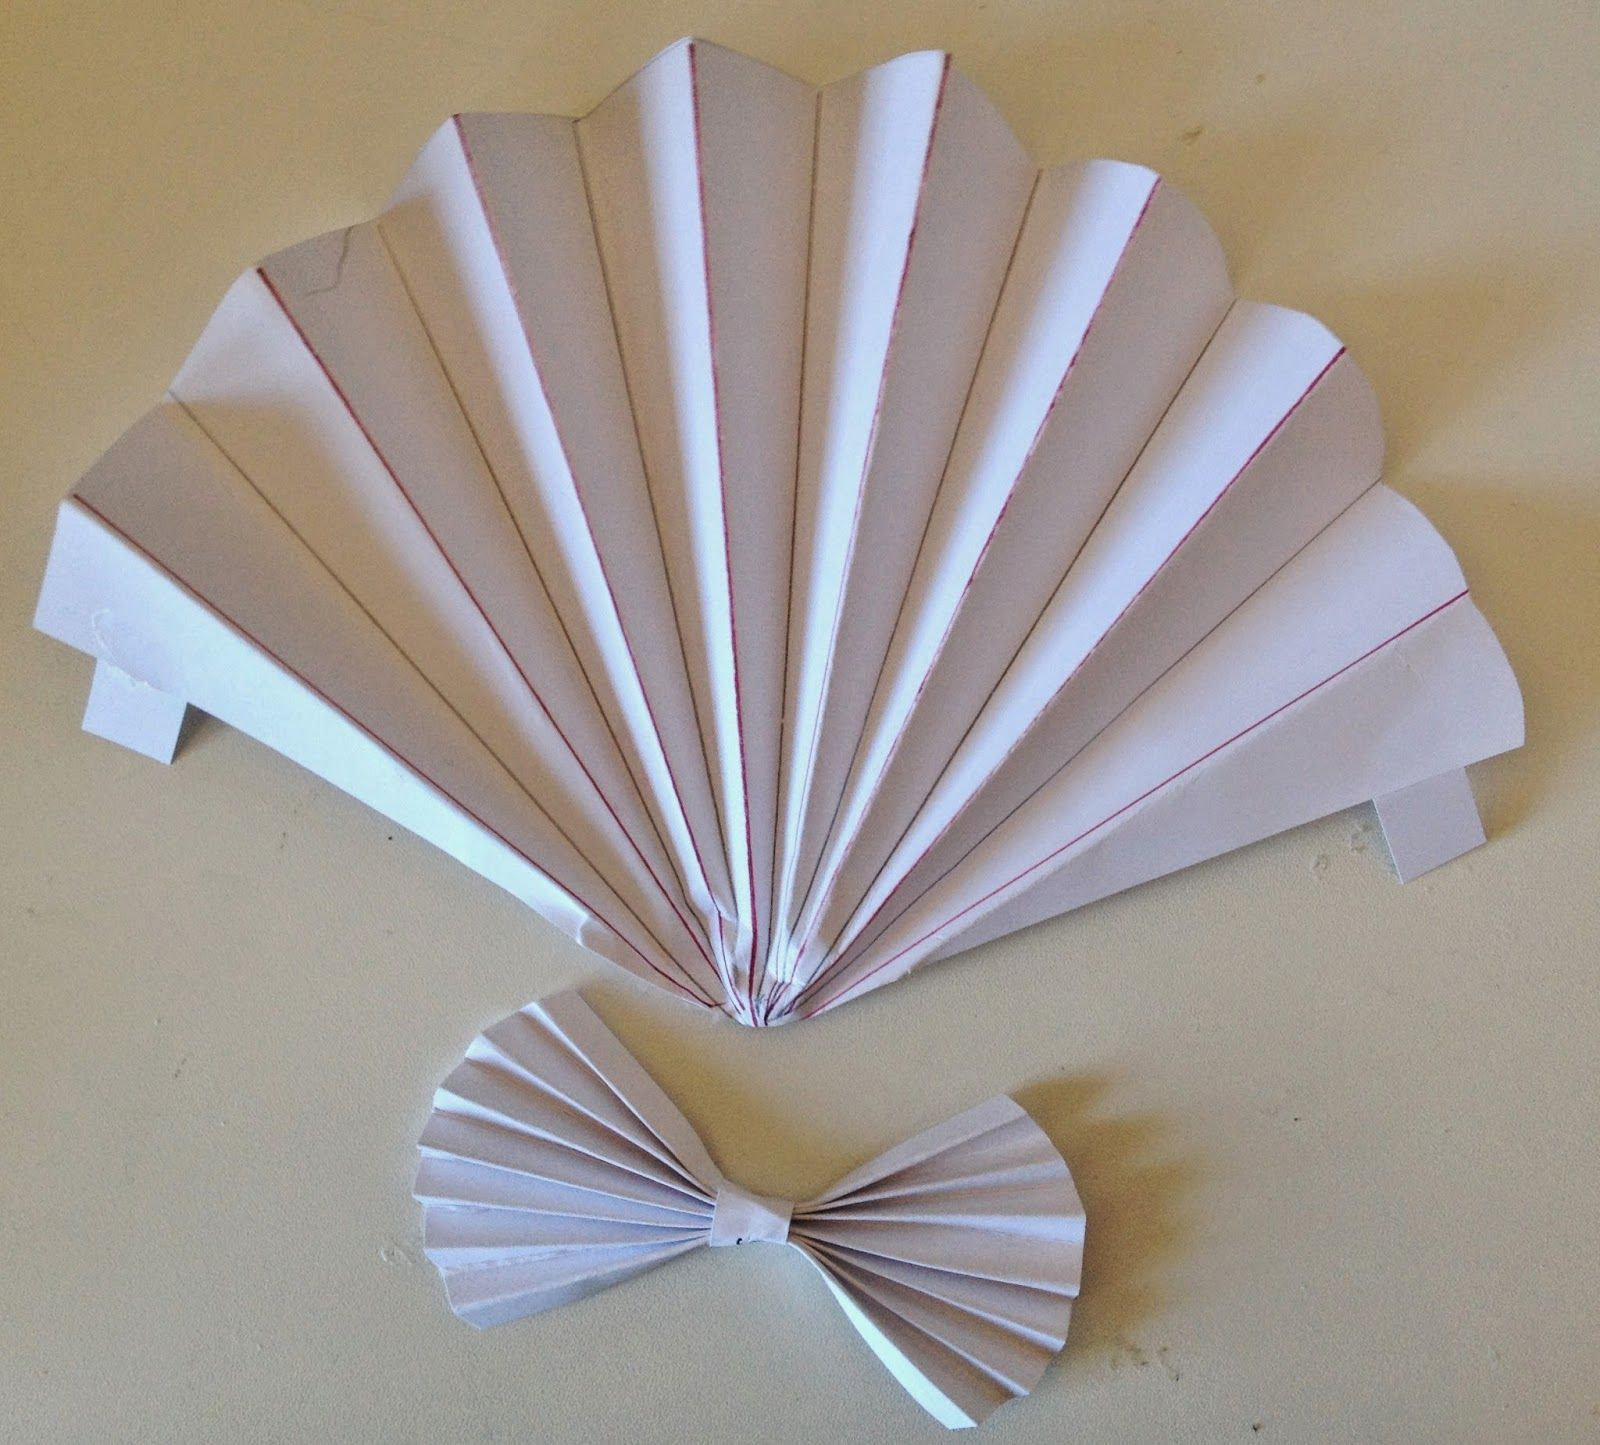 annes papercreations: How to make a 3D Shell Easel card with G45 ...